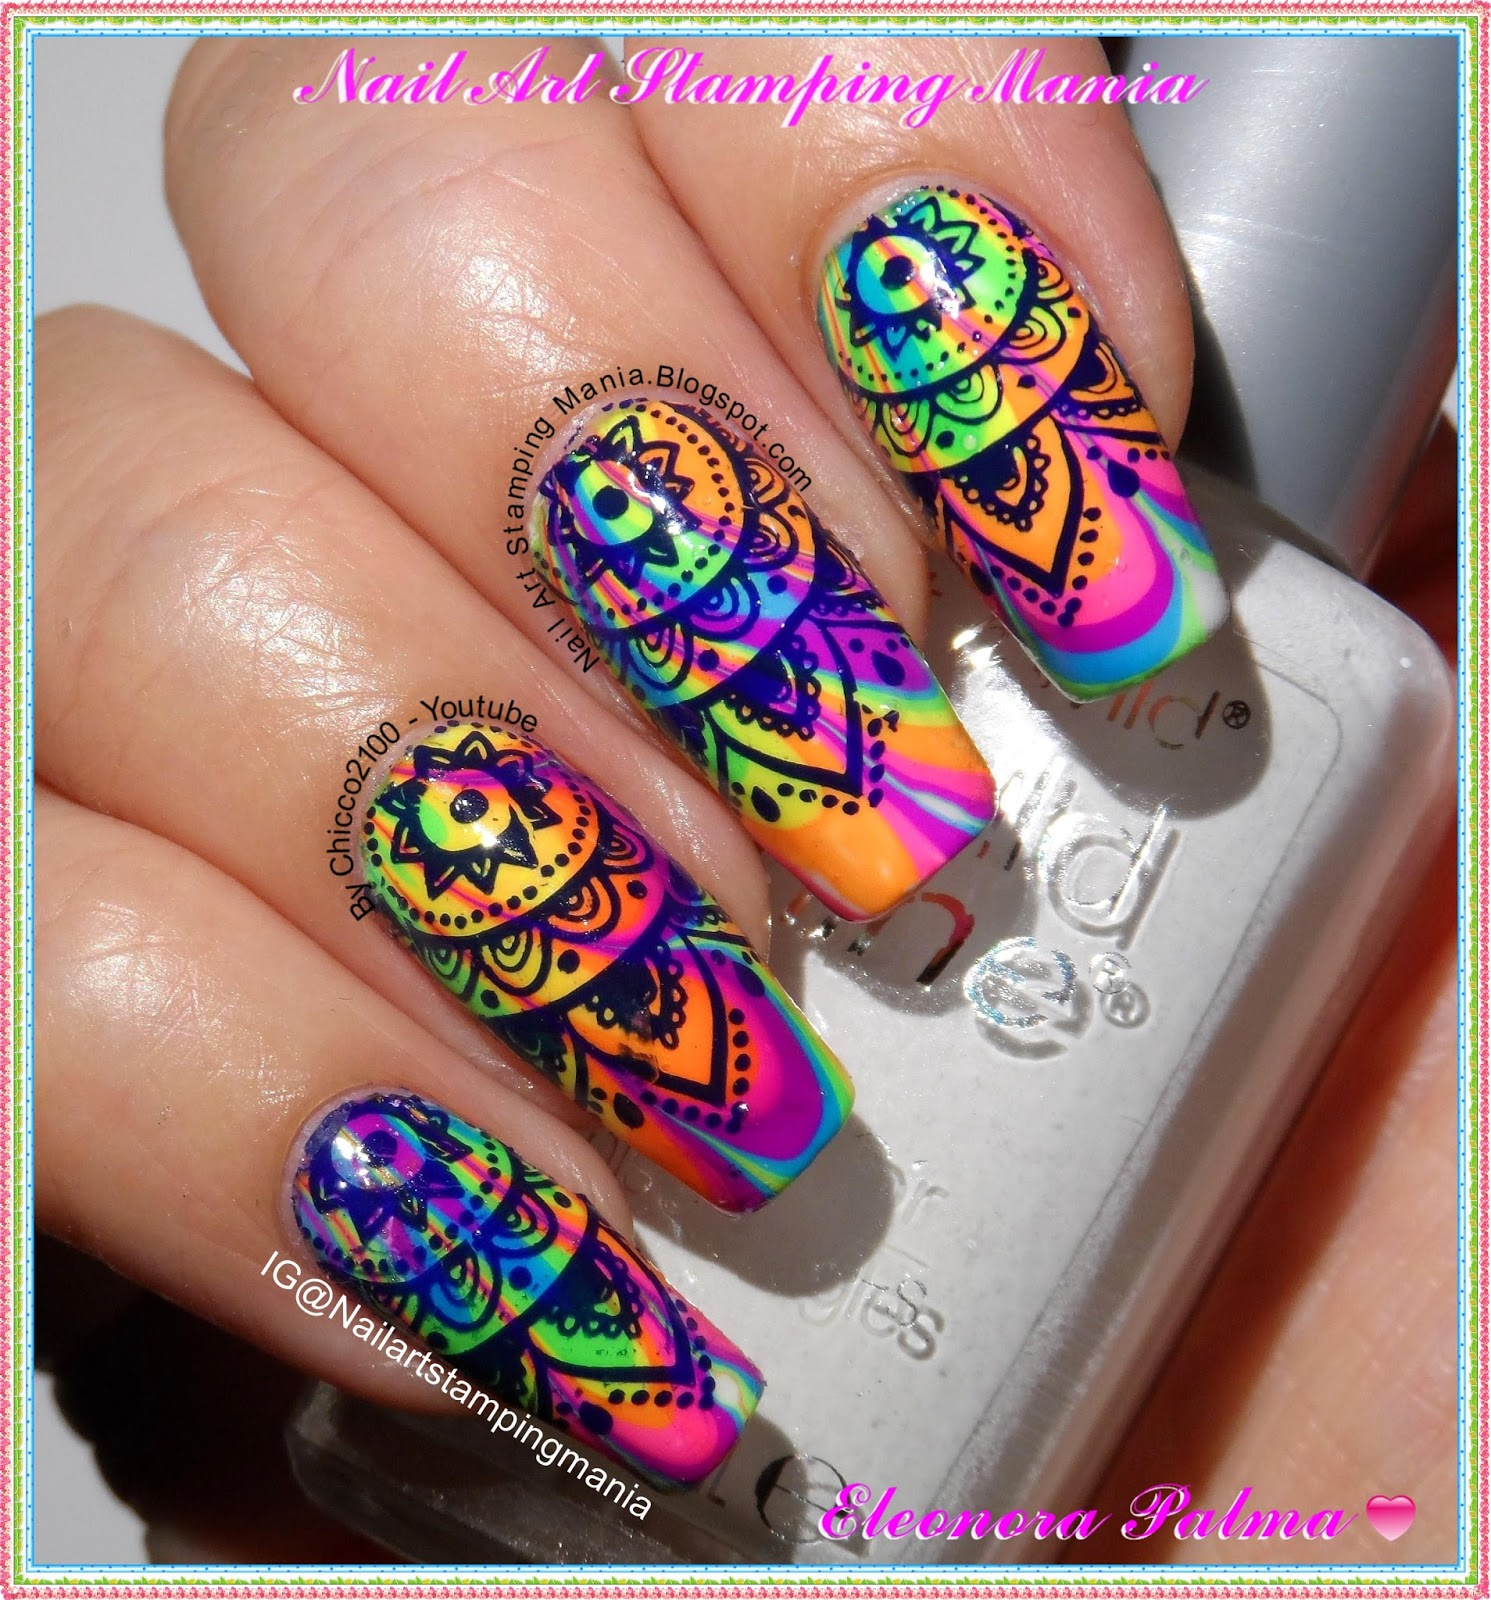 Nail Art Stamping Mania: Water Marble Manicure With Born